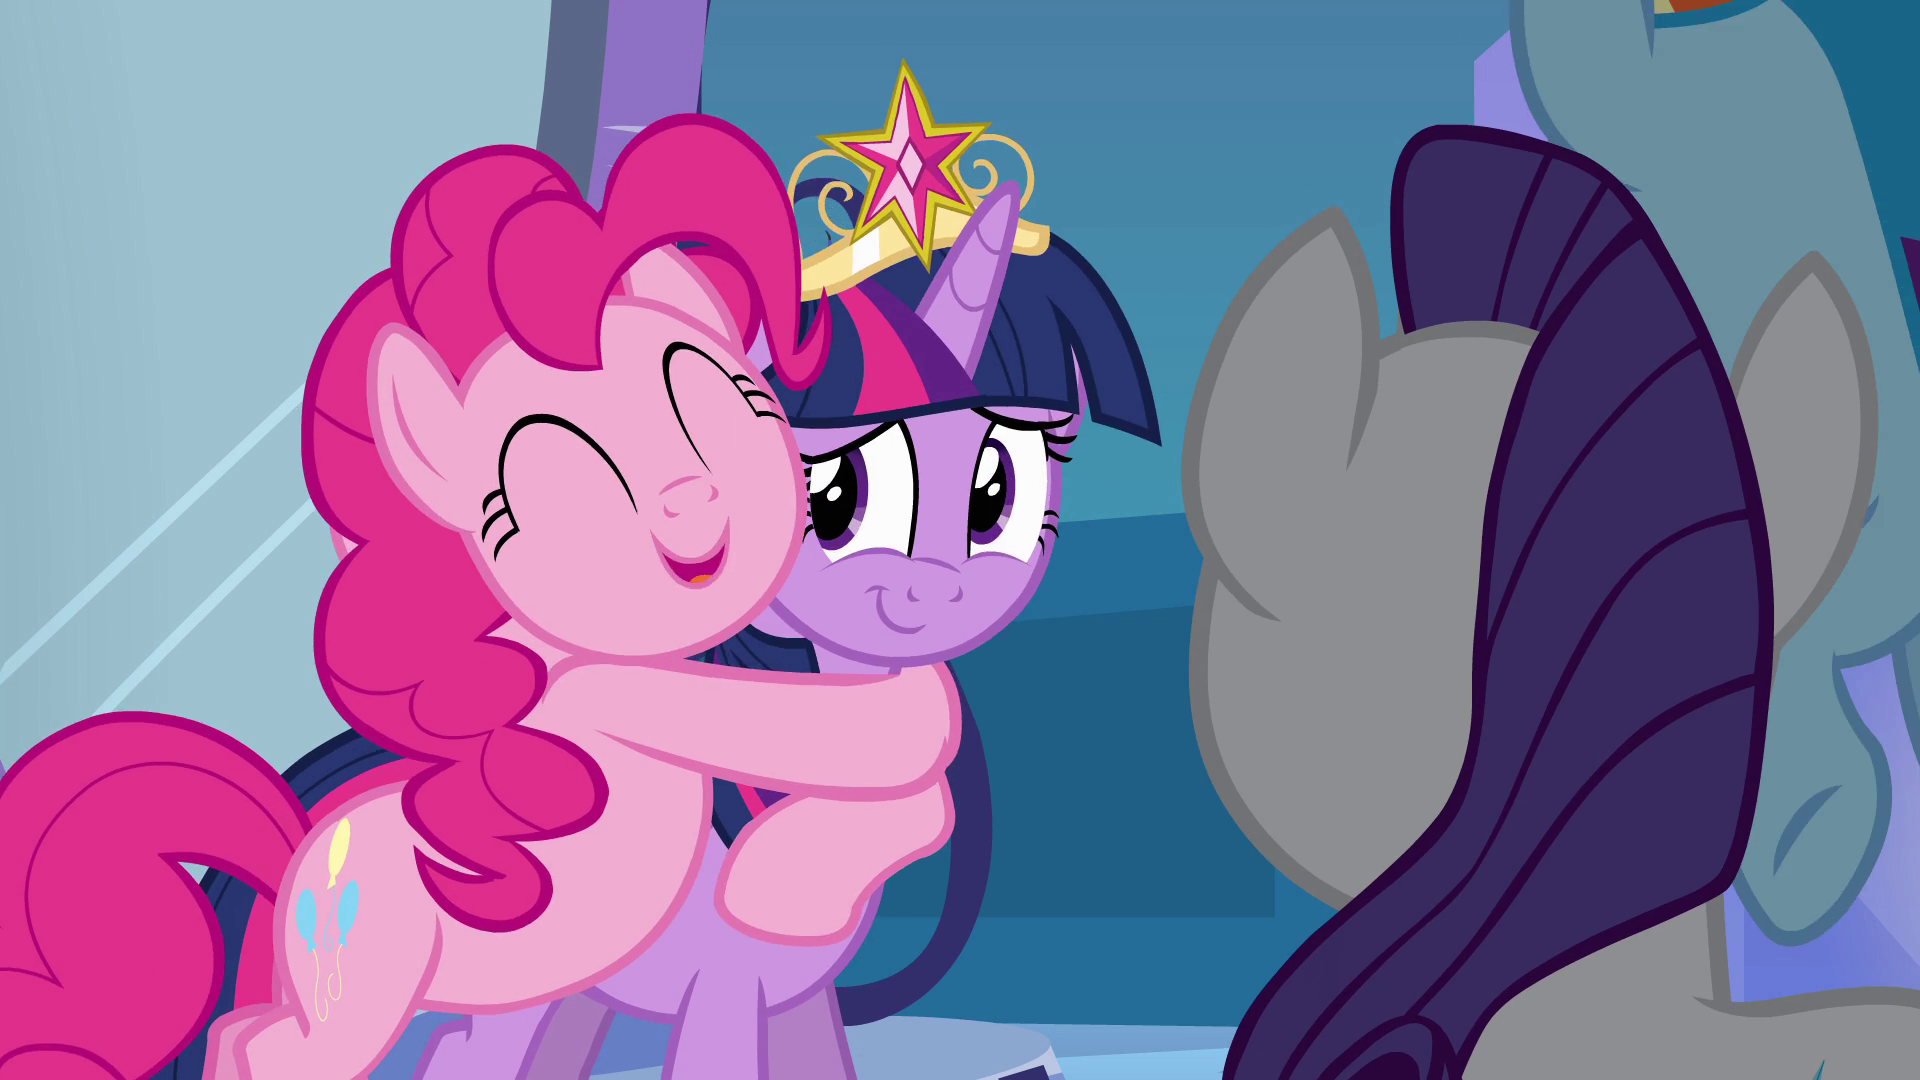 Pinkie_Pie_hugging_Twilight_EG.png